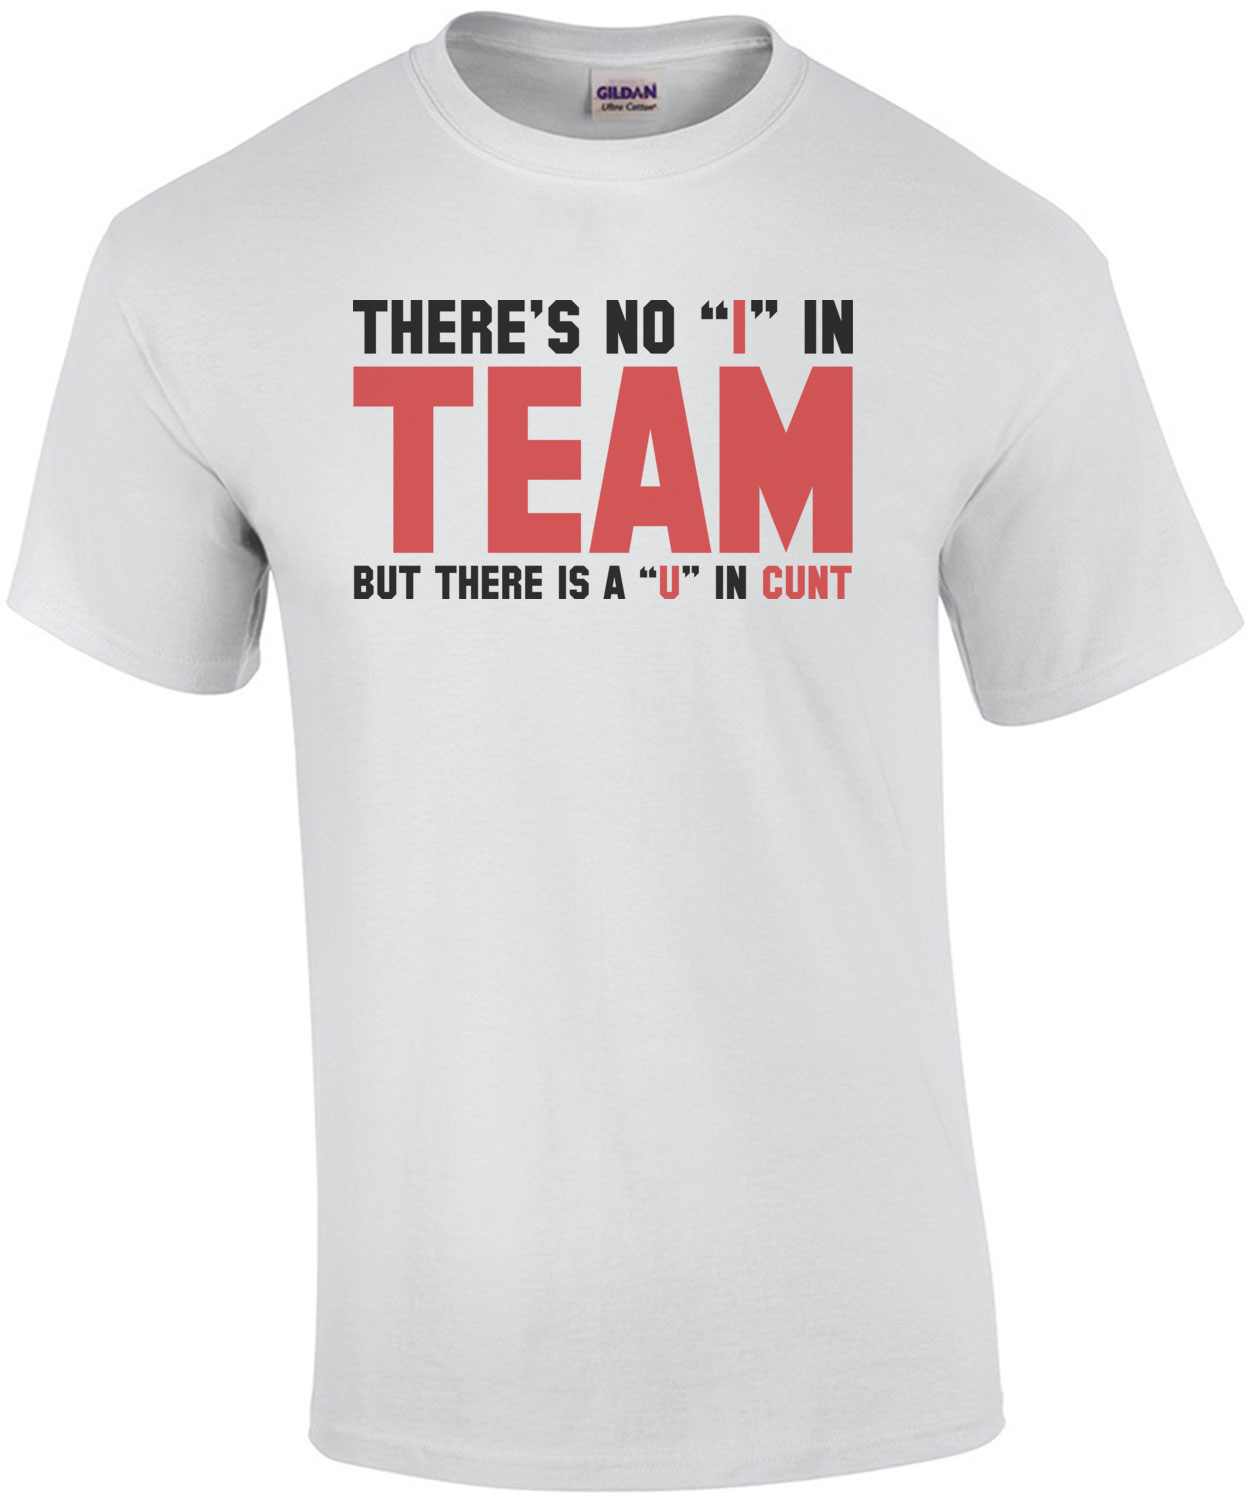 "There's no ""I"" in team, but there's a ""U"" in cunt Shirt"